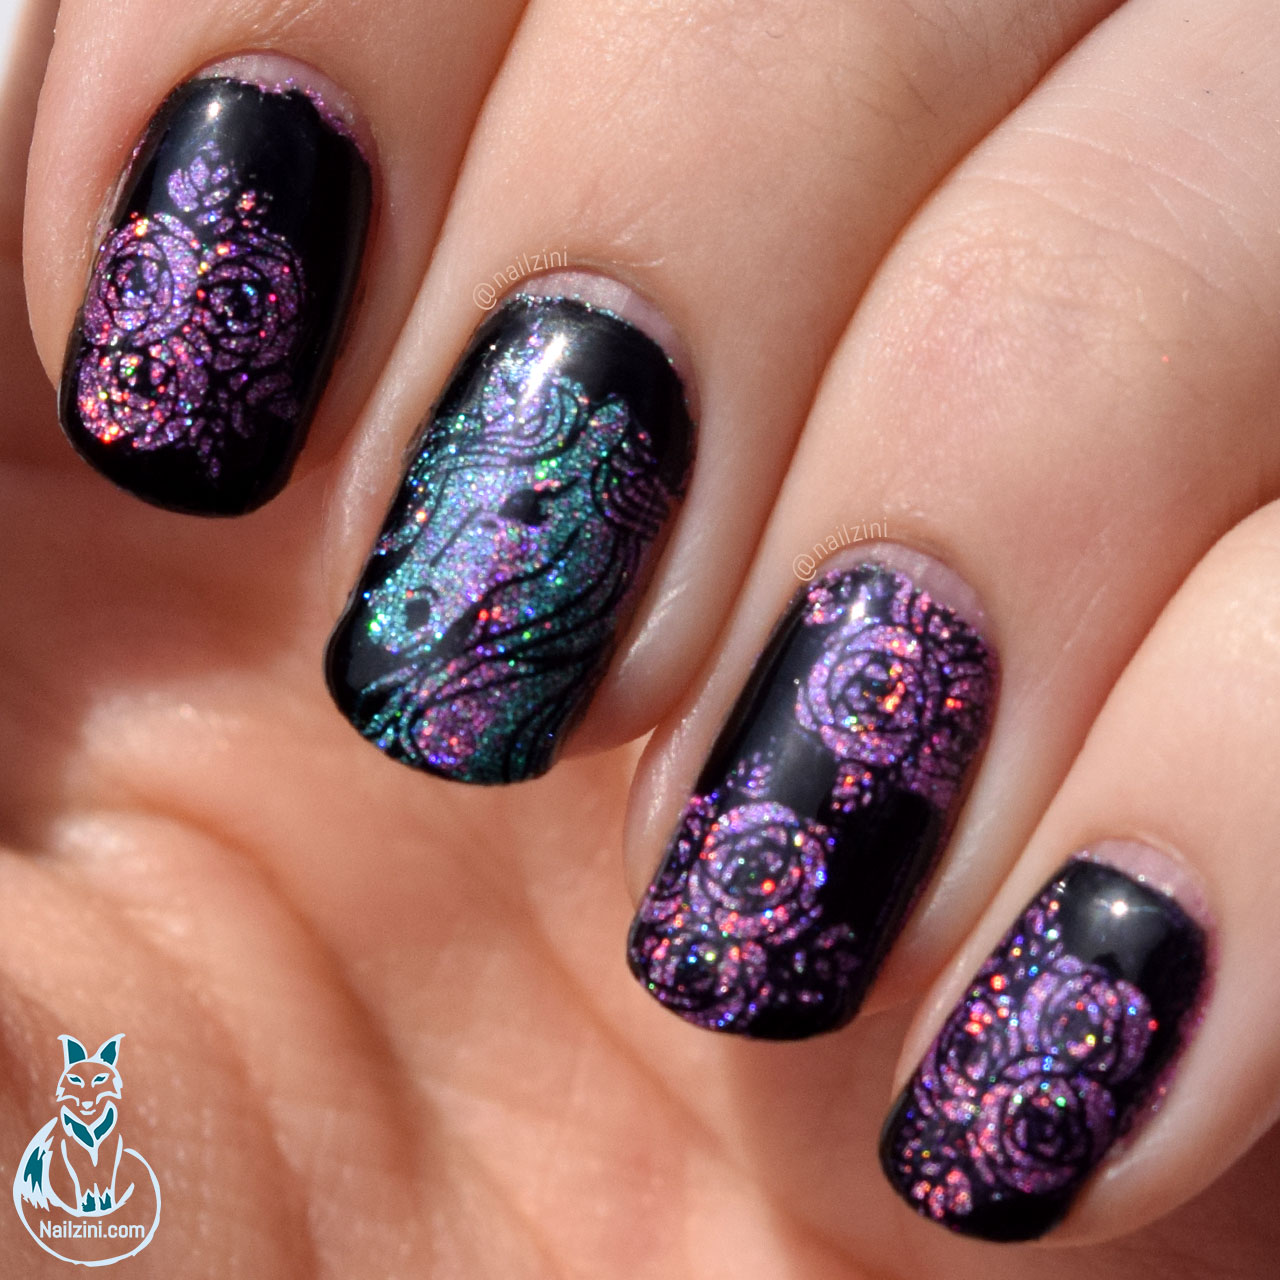 Holographic Unicorn Nail Art Nailzini A Nail Art Blog